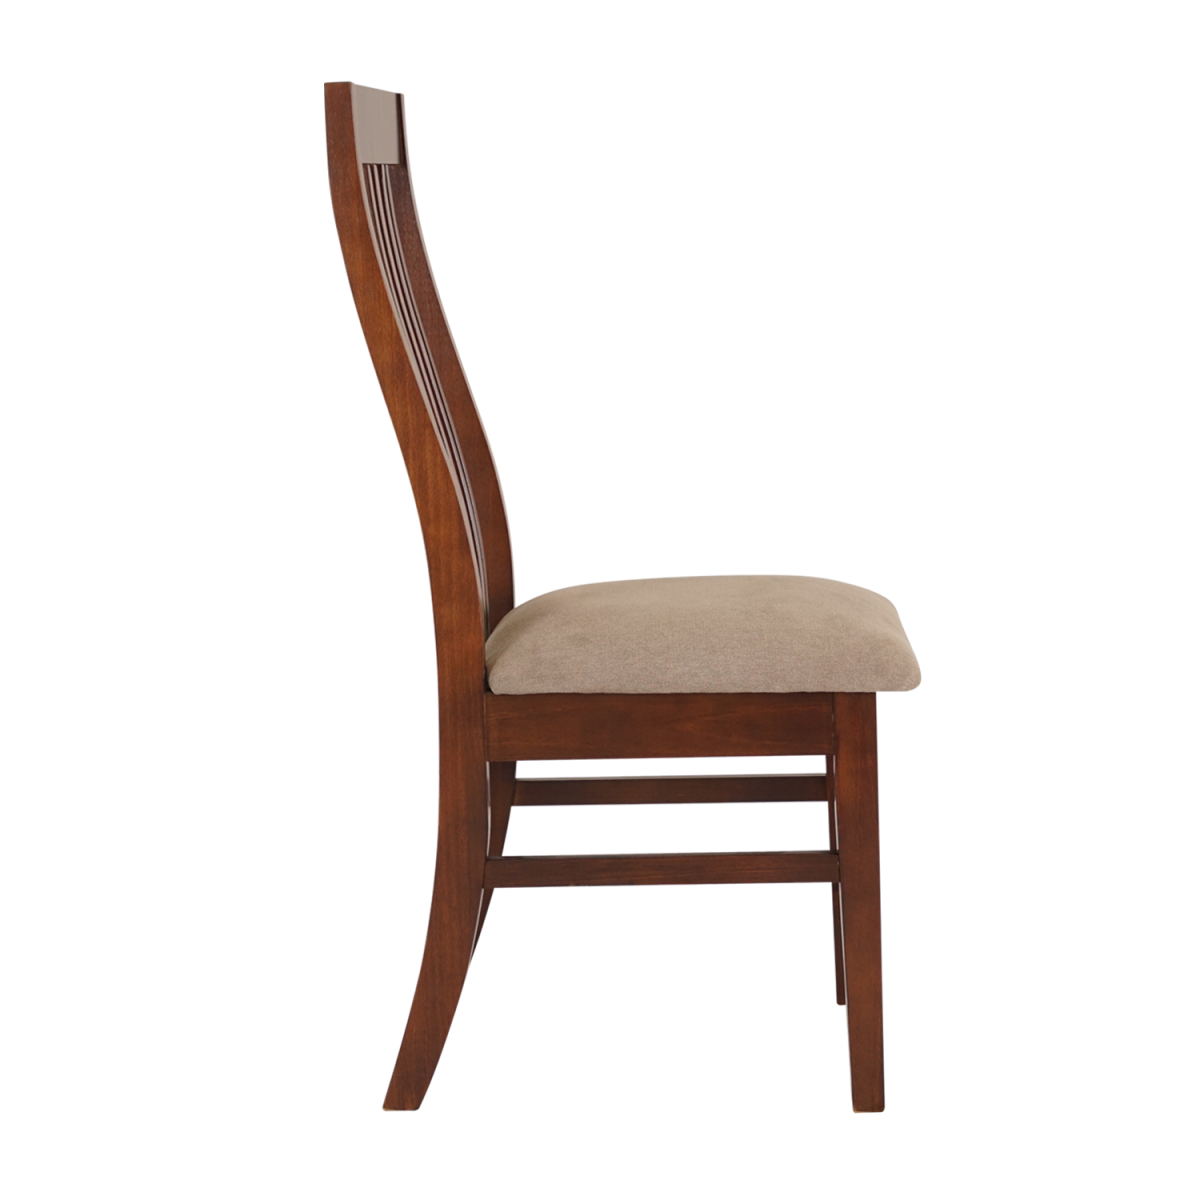 Double Star Furniture Toulon Dining Chair Double Star